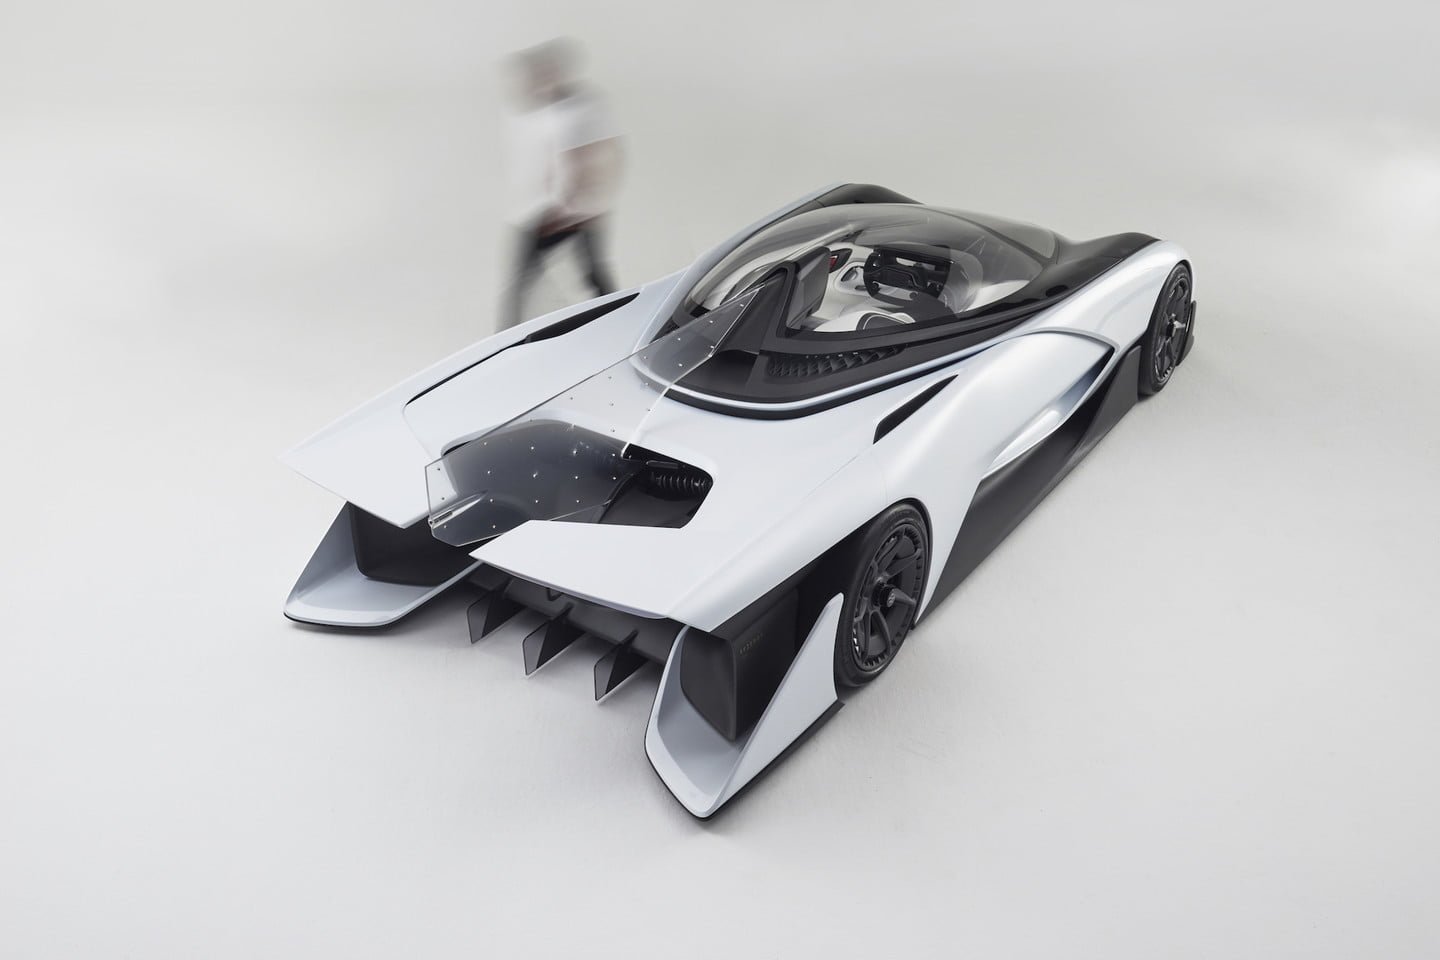 Will Faraday Future have a future if it can't stay current on its factory bills?